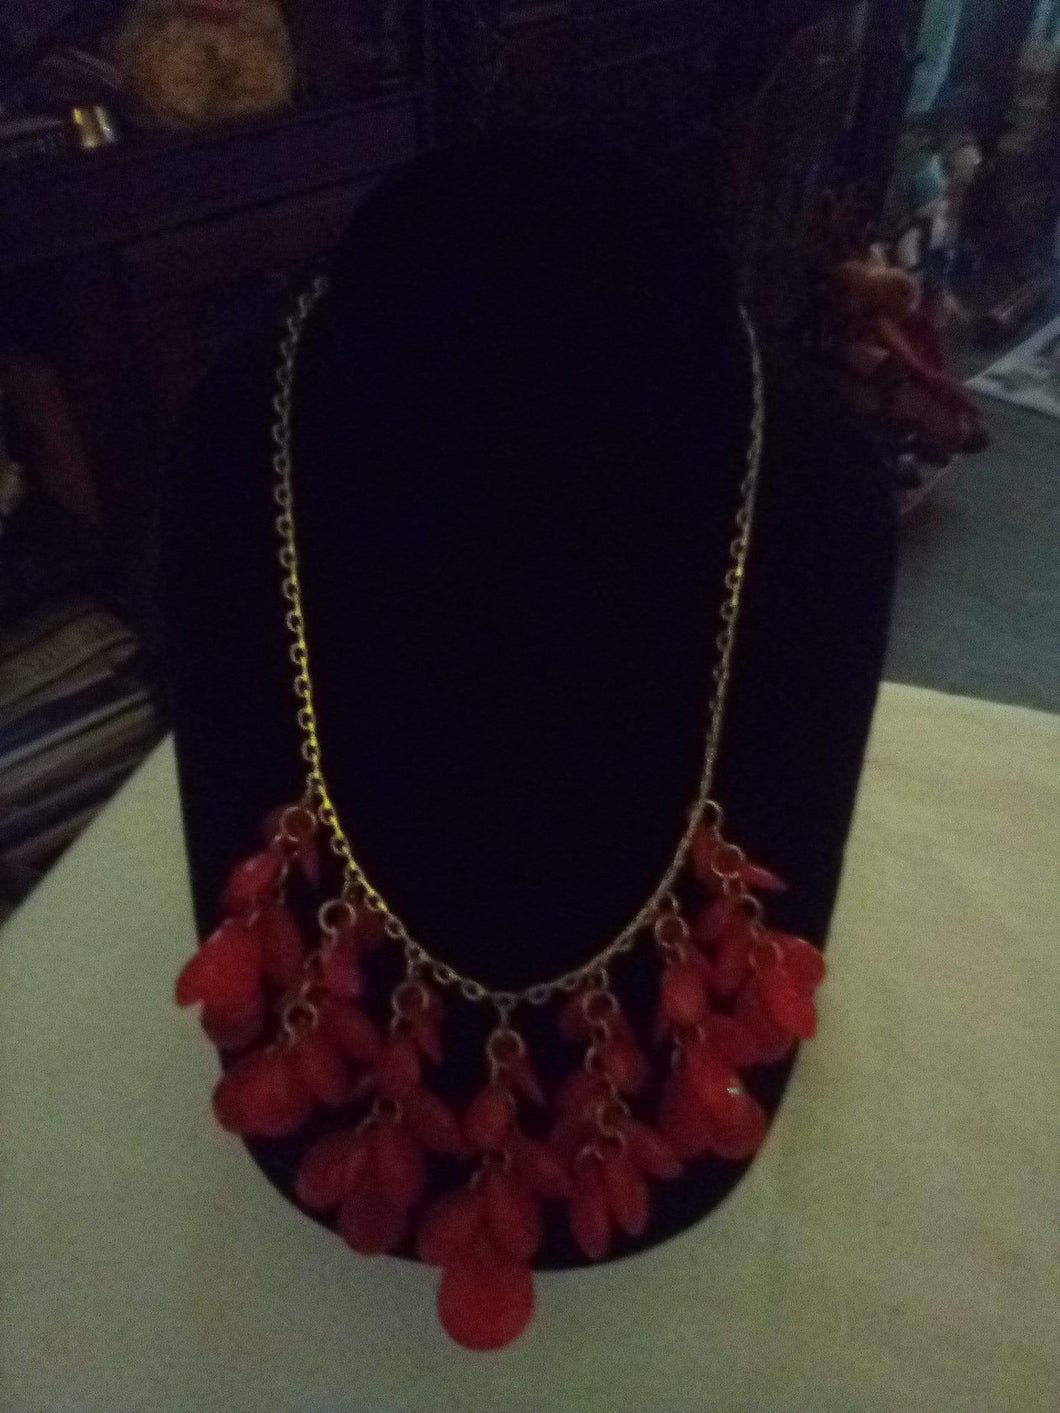 Dressy necklace with colorful decor - B&P'sringsnthings